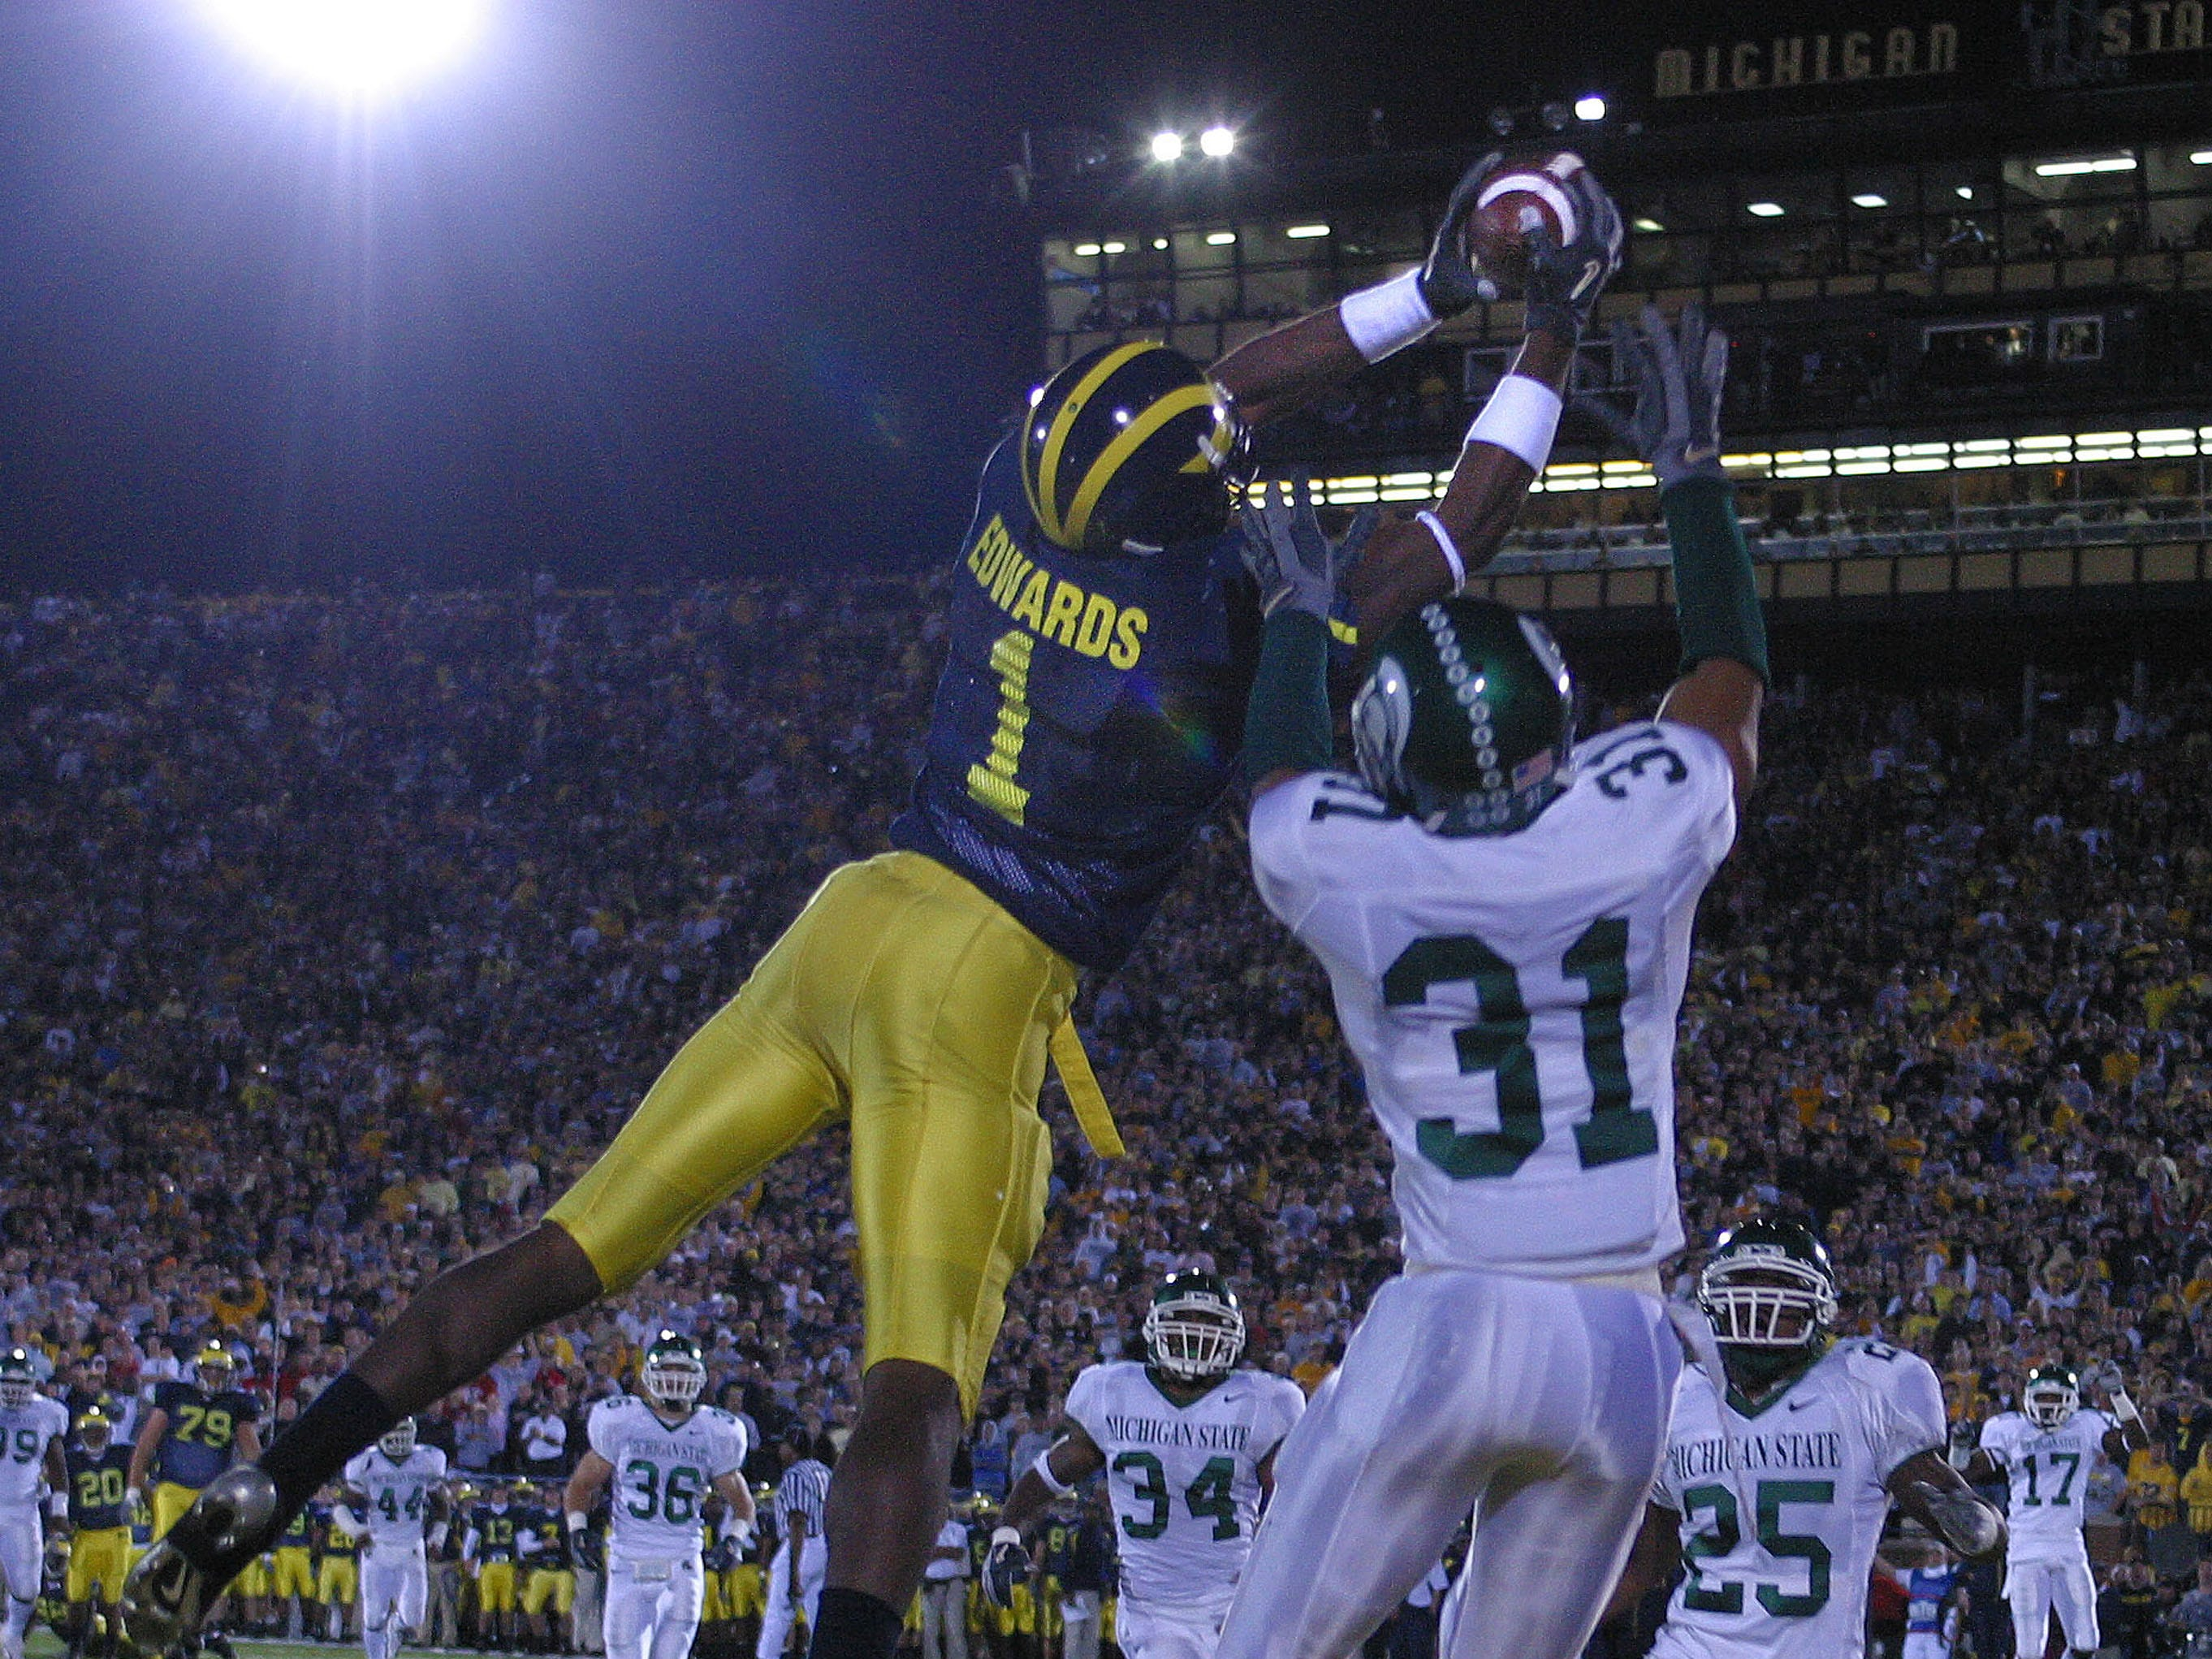 MICHIGAN STATE-MICHIGAN: To be fair (and to limit the phone calls!), we must include a picture of a memorable Michigan moment, too, like Braylon Edwards' epic game in the Wolverines' triple-OT victory in Ann Arbor in 2004.